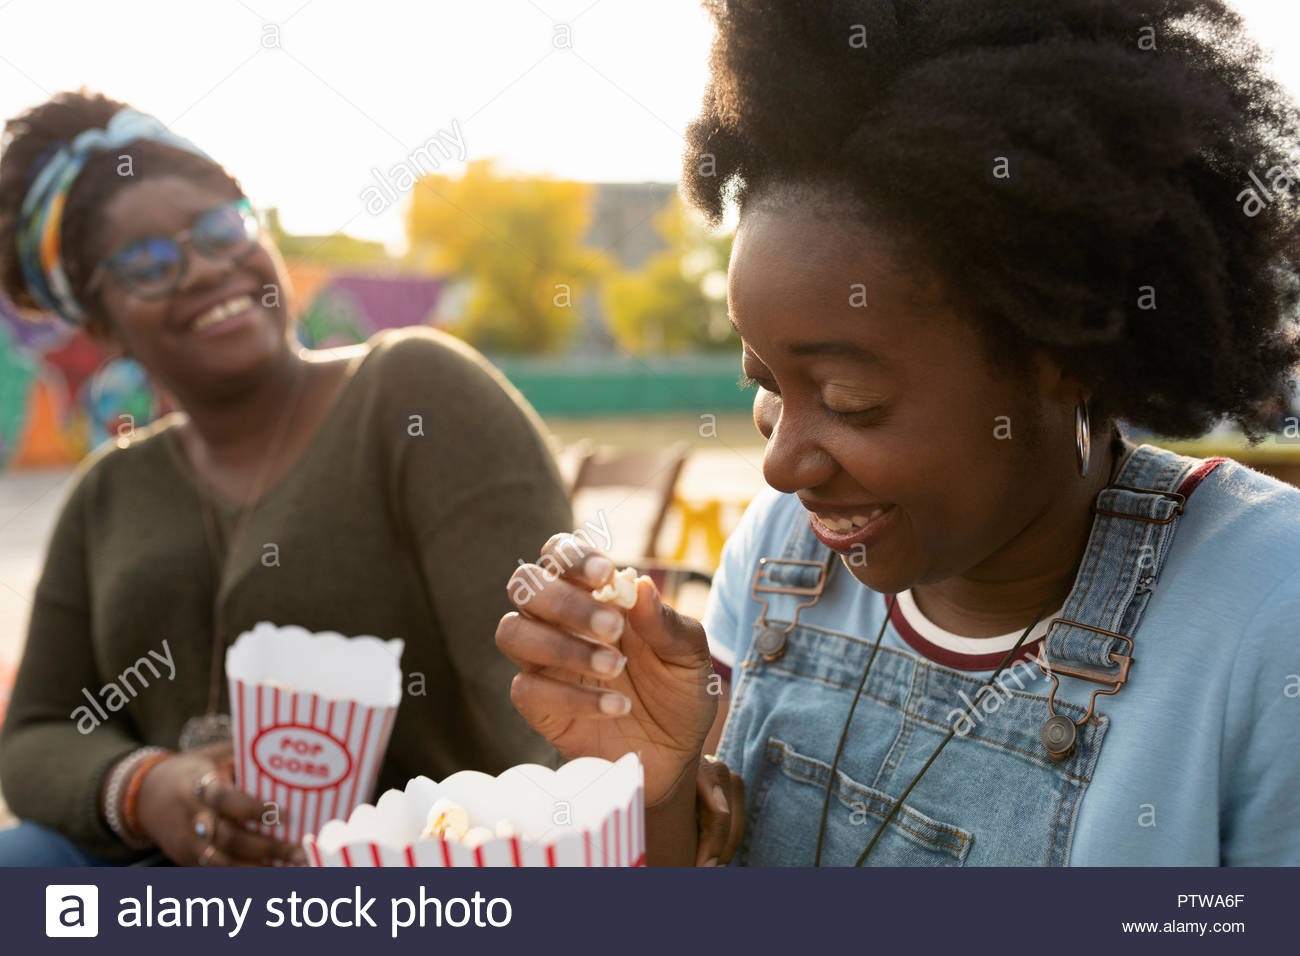 Father eating popcorn Photo Stock